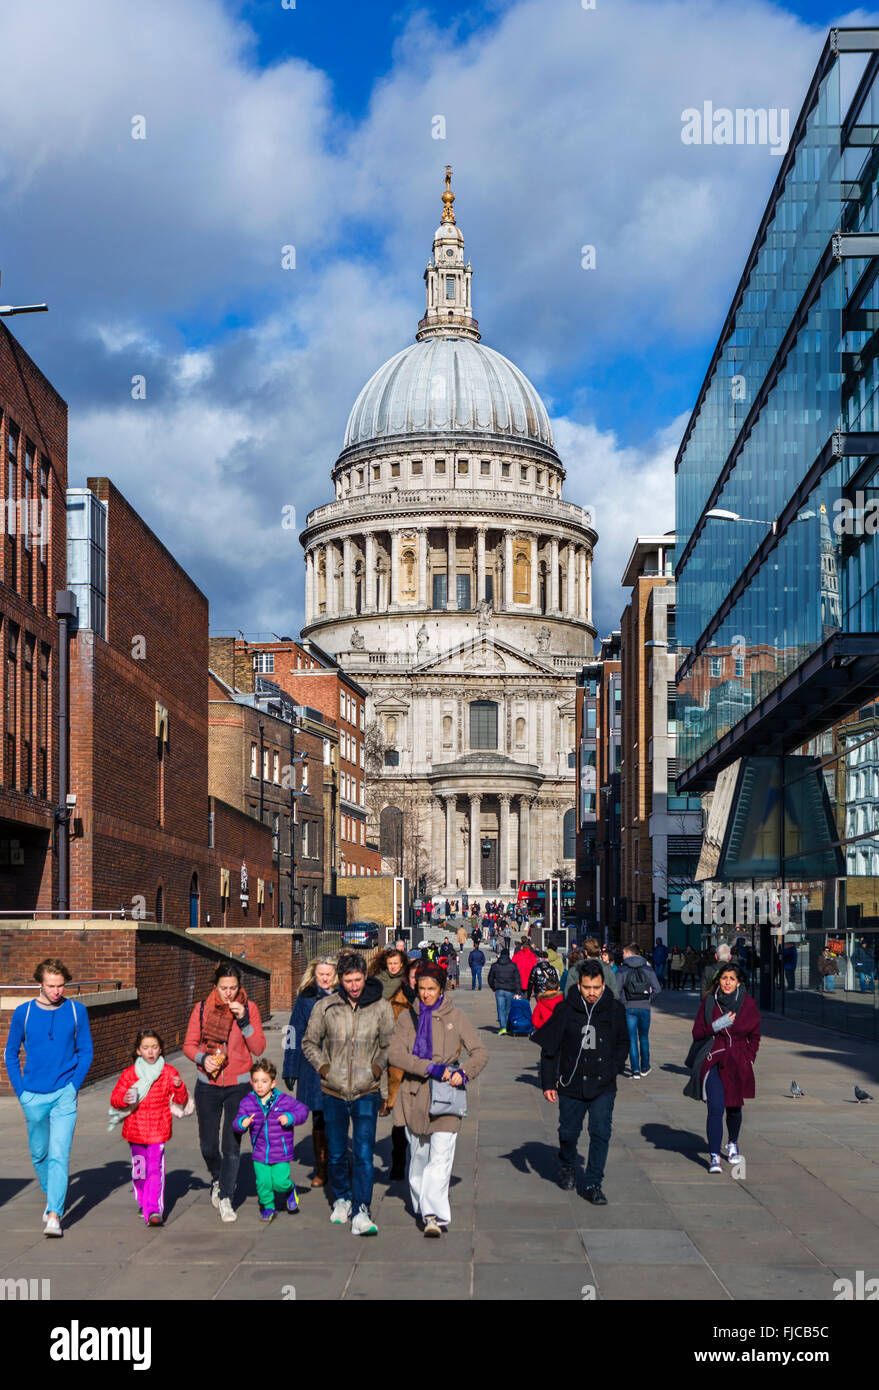 St Paul's Cathedral from Peter's Hill, London, England, UK - Stock Image